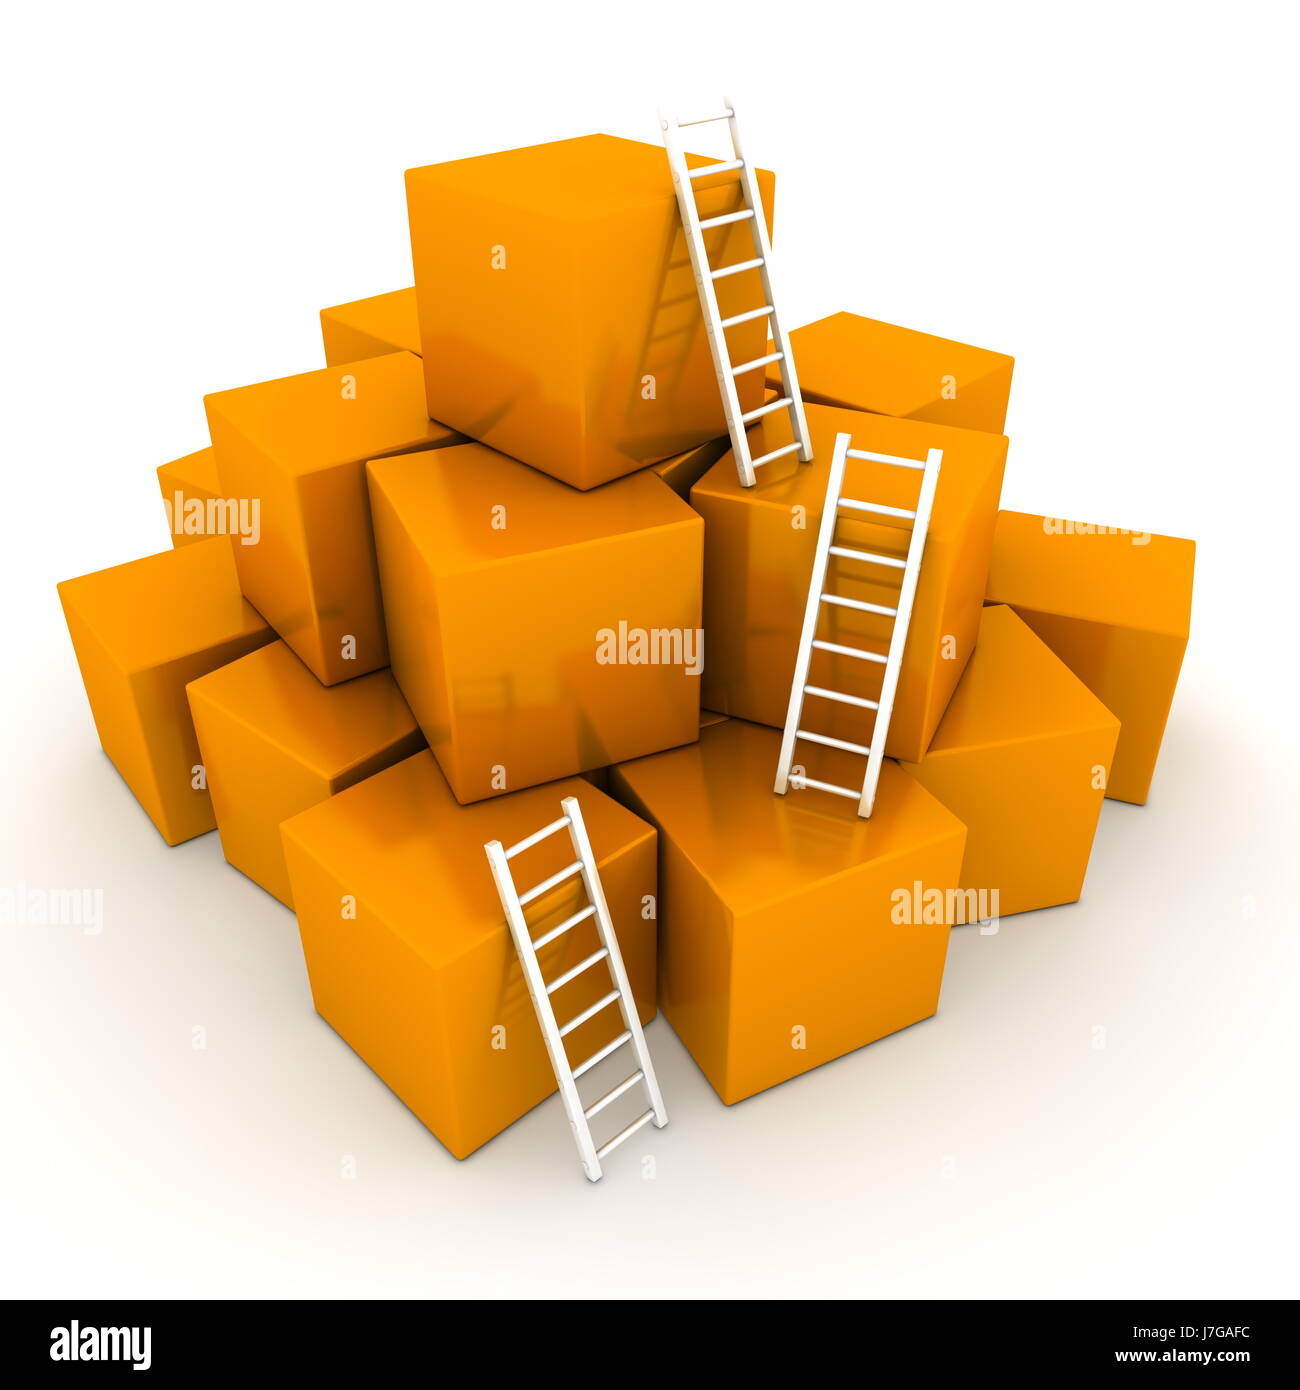 up on box boxes heap pile white cubes ladders orange stairs object isolated - Stock Image